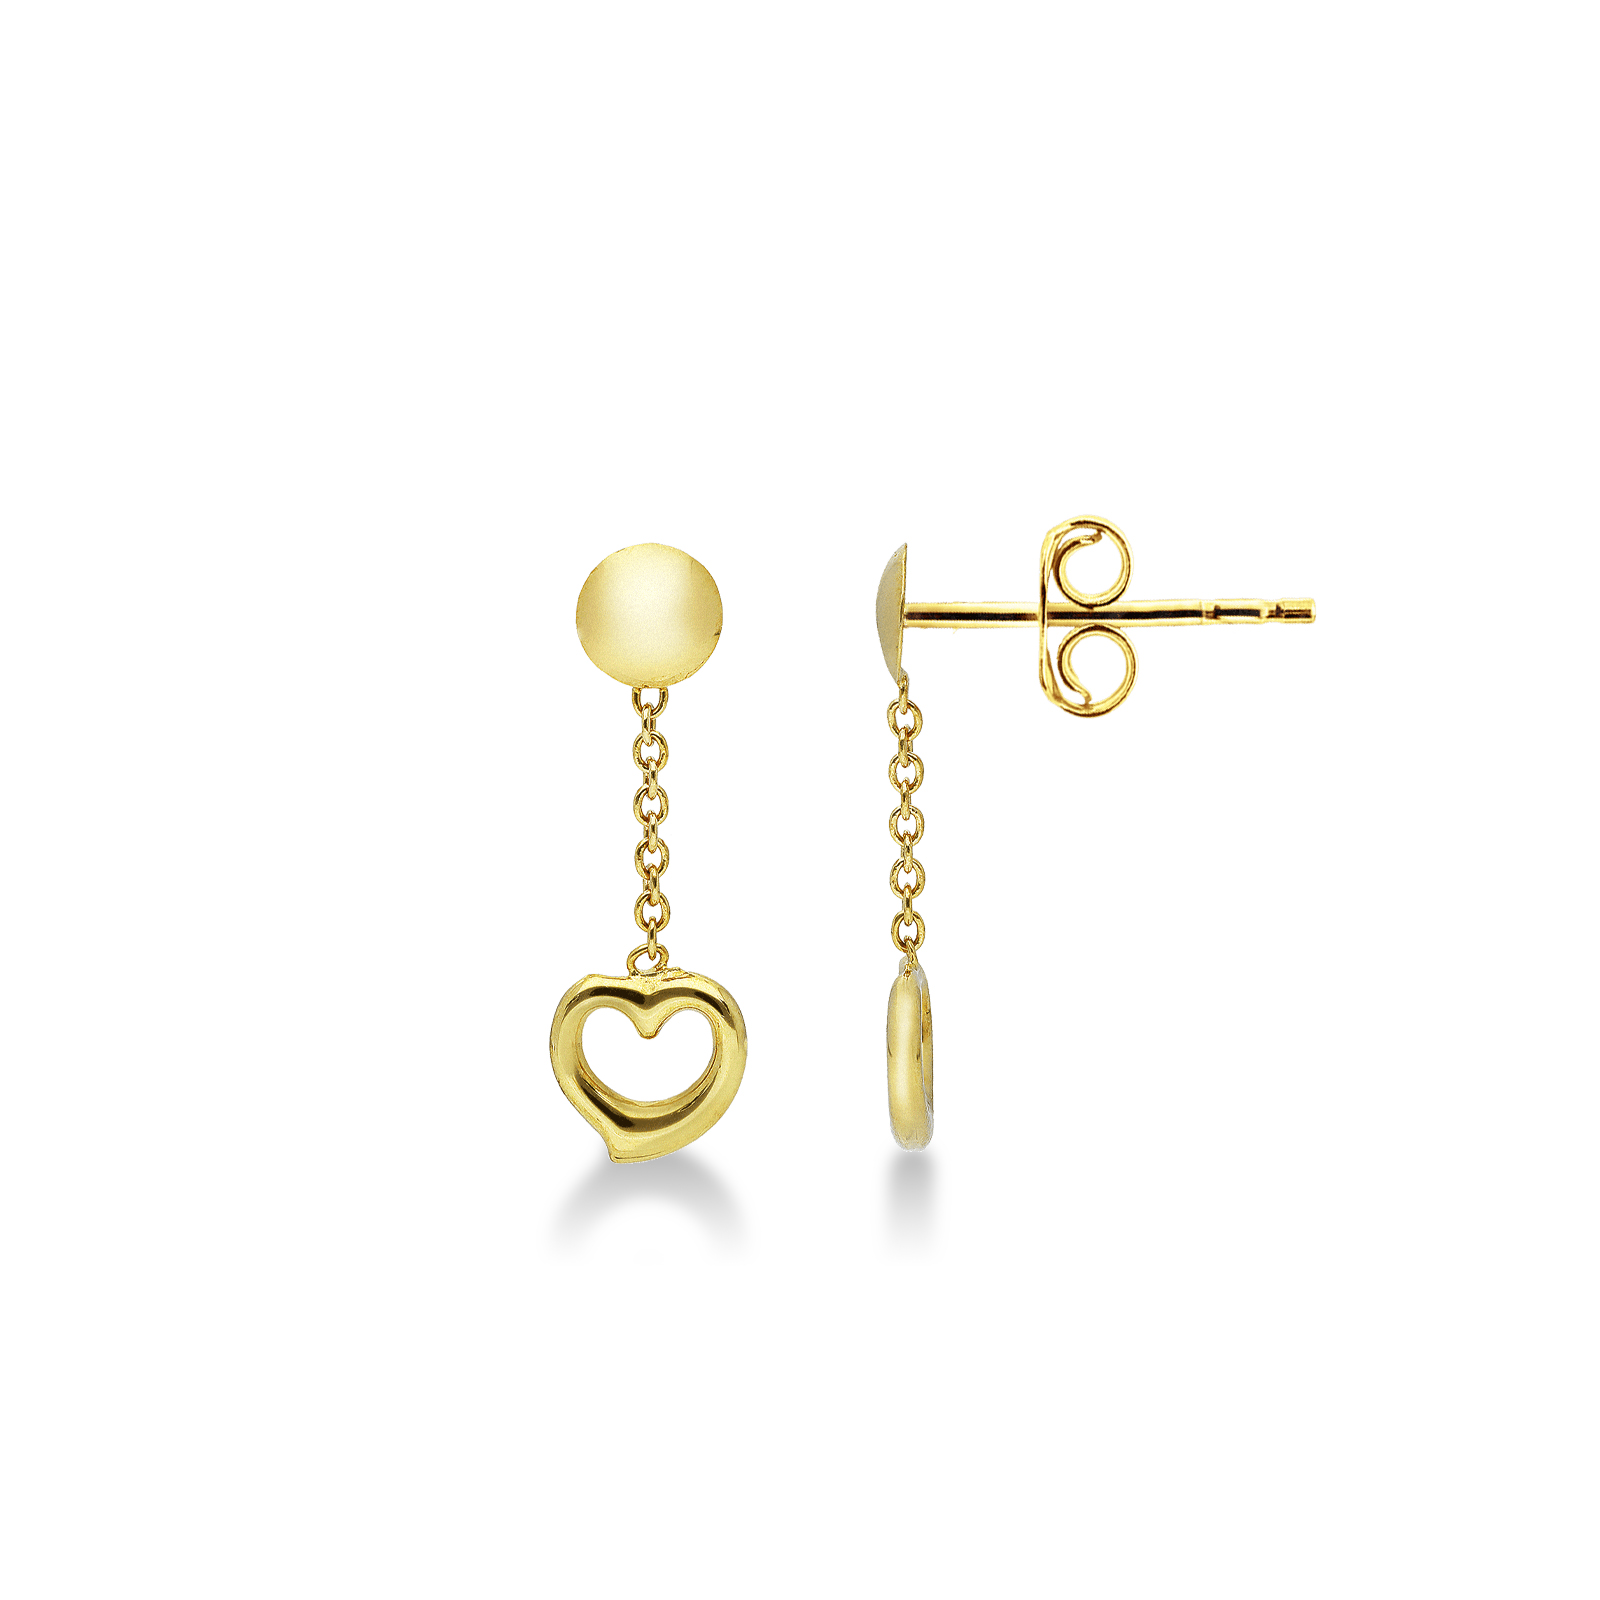 Earrings 18k Gold with Hearts